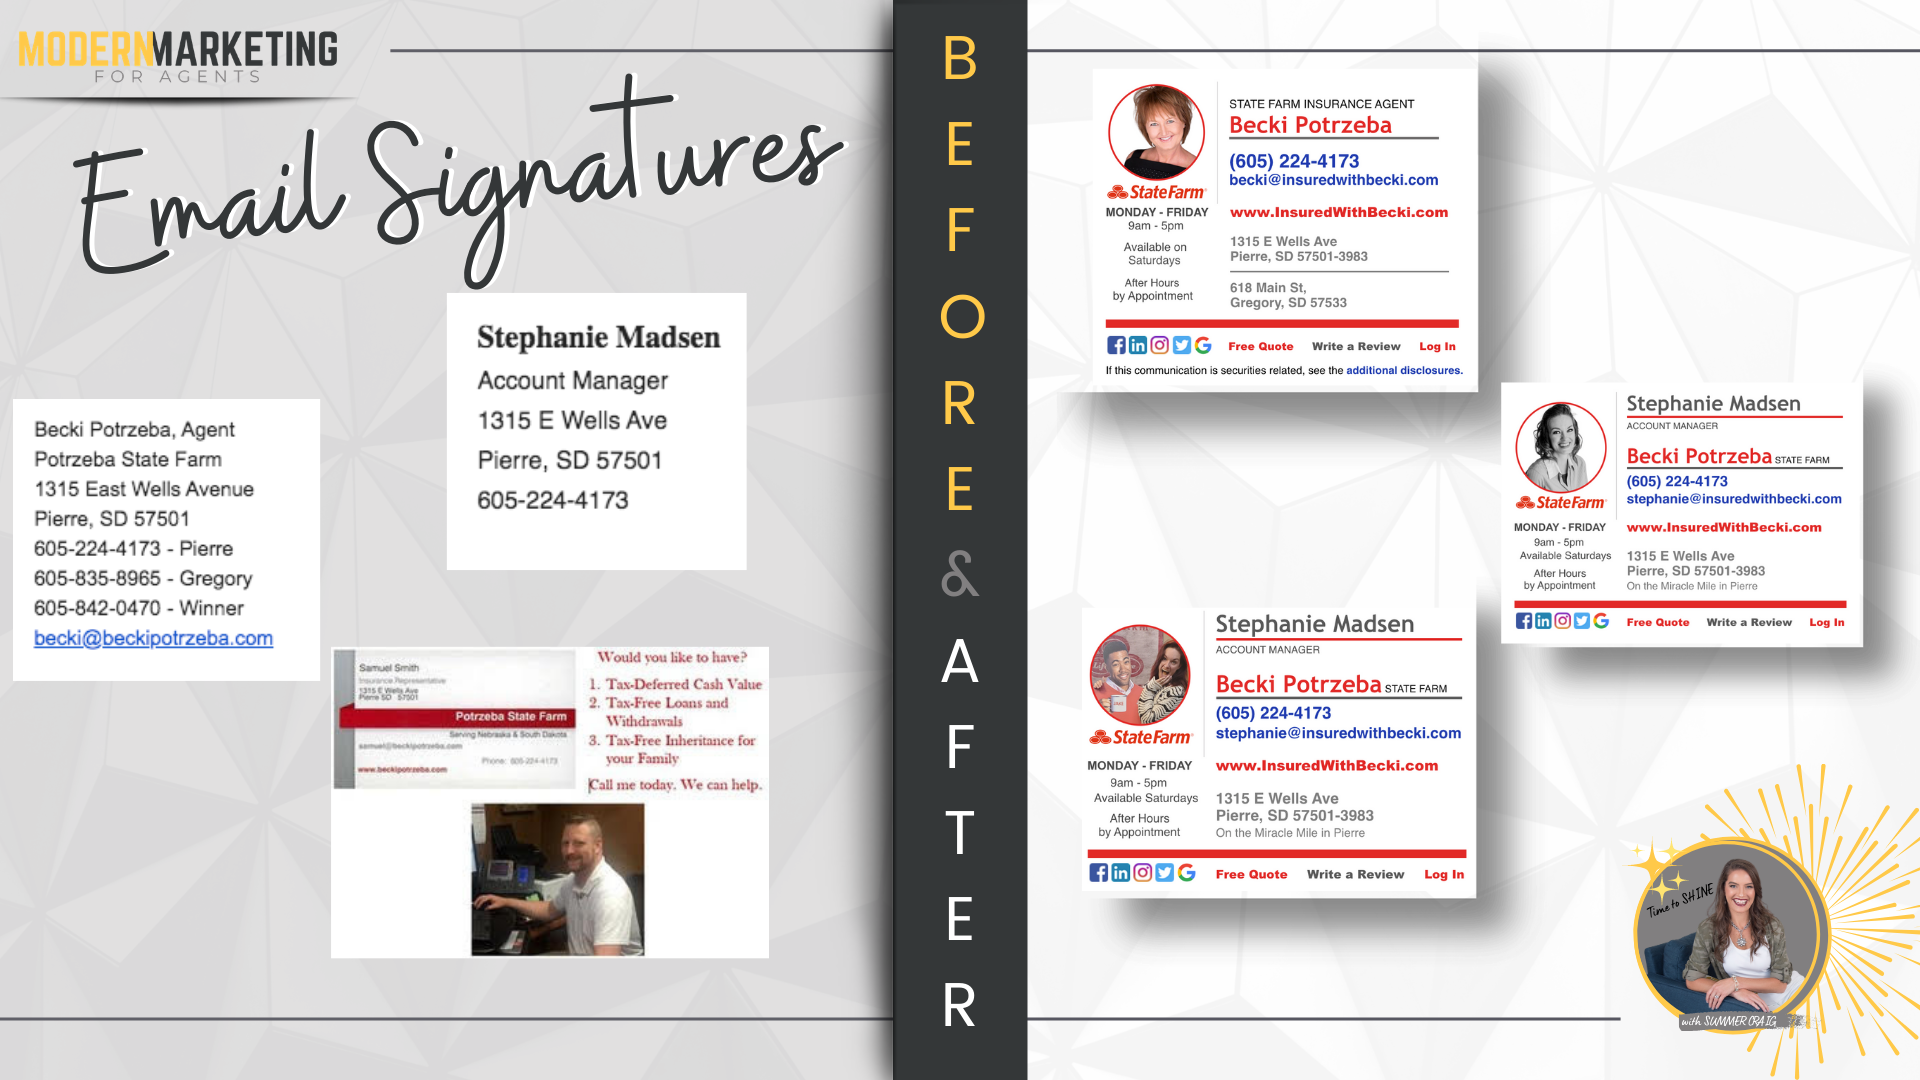 email signatures modern marketing